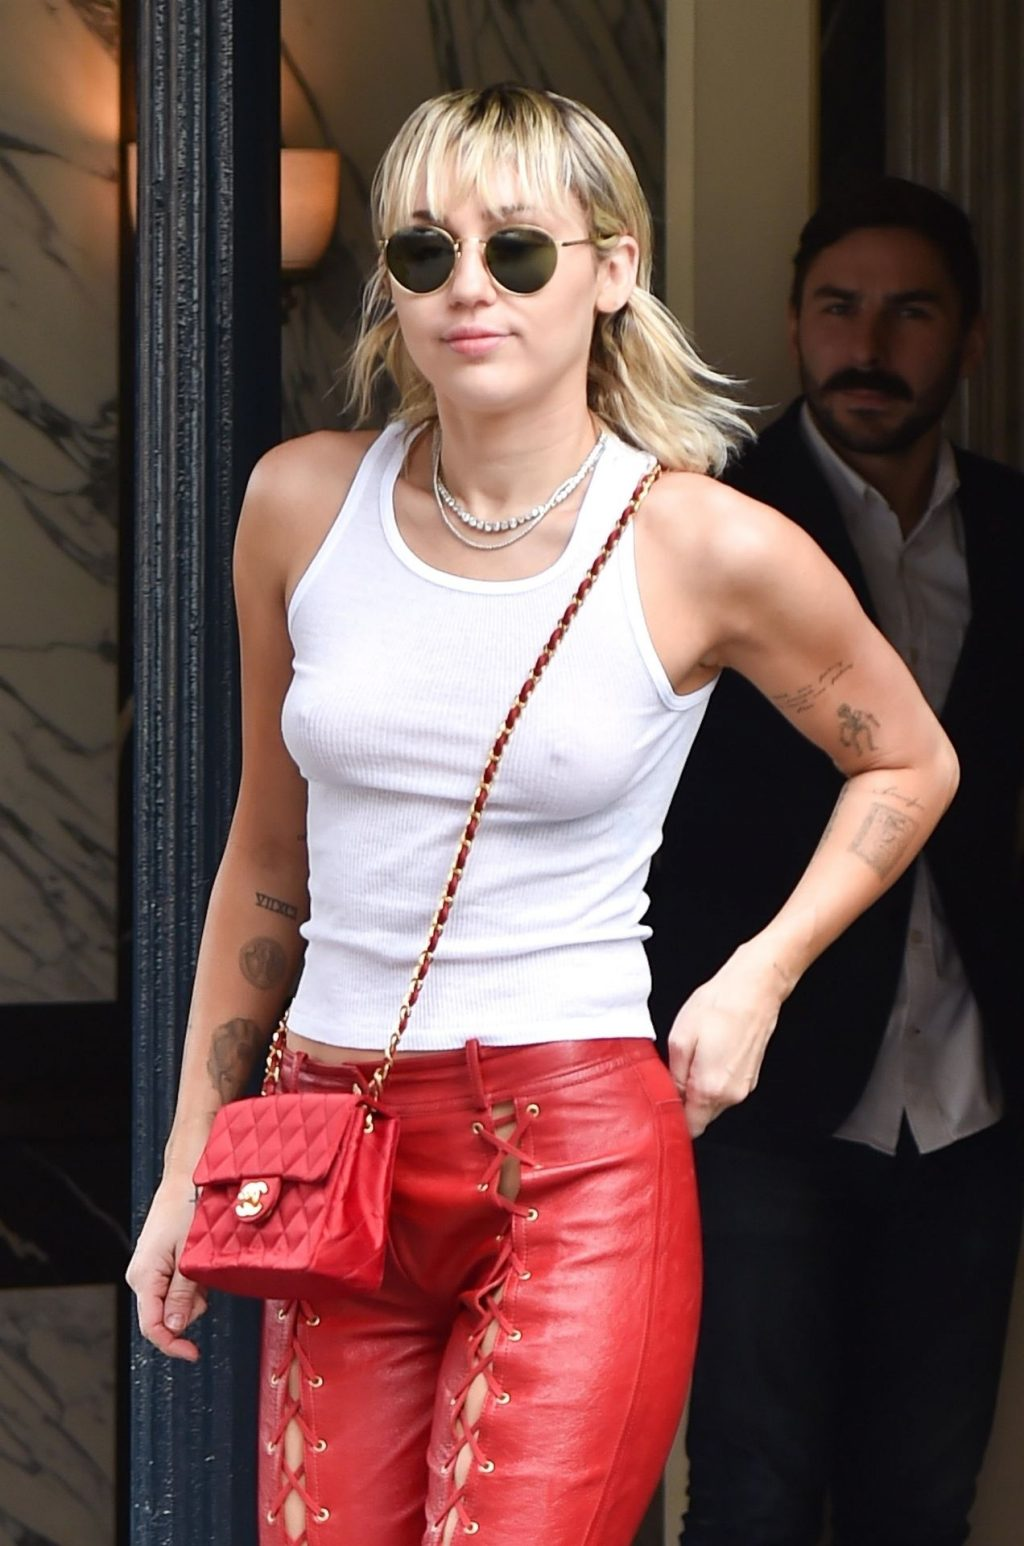 Braless Miley Cyrus is Red Hot in Leather Lace Up Biker Pants with a Tank Top (60 Photos)